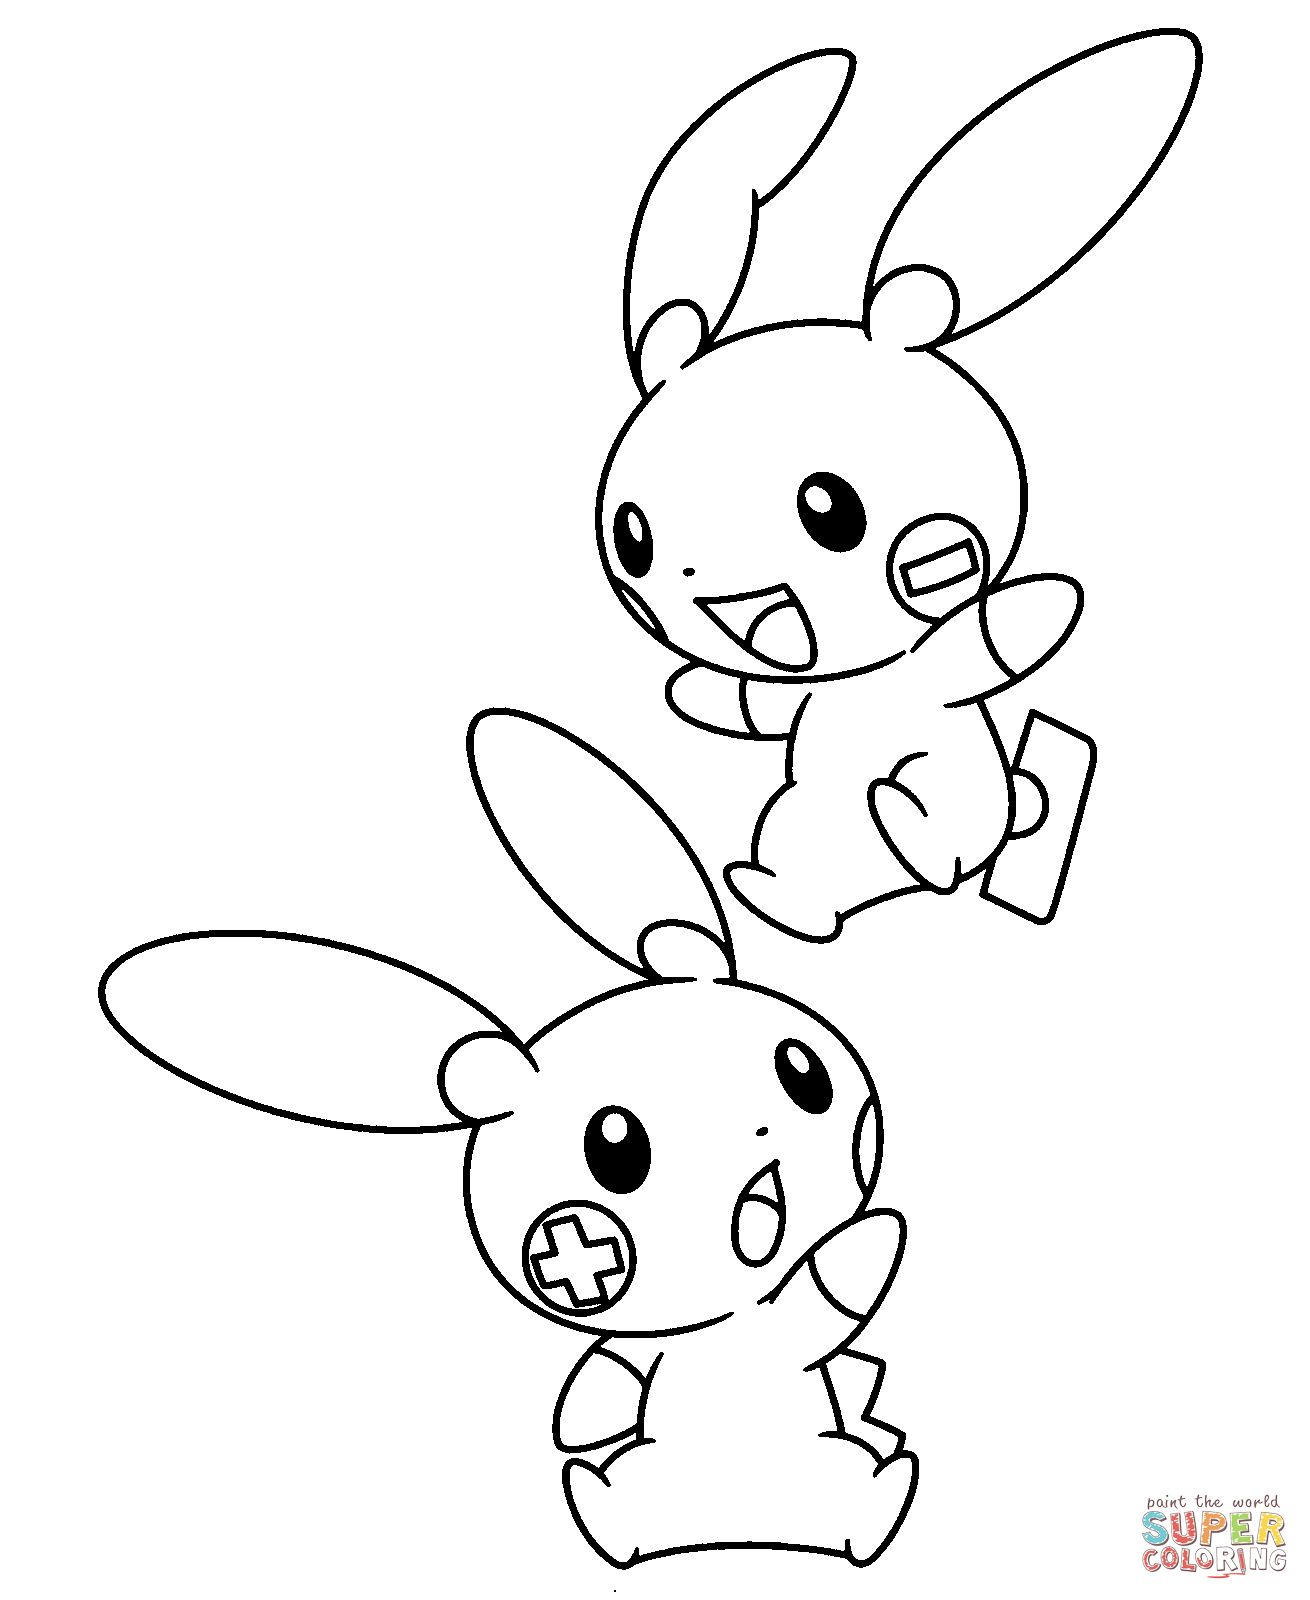 pokemon pics to color pikachu coloring pages to download and print for free color pics pokemon to